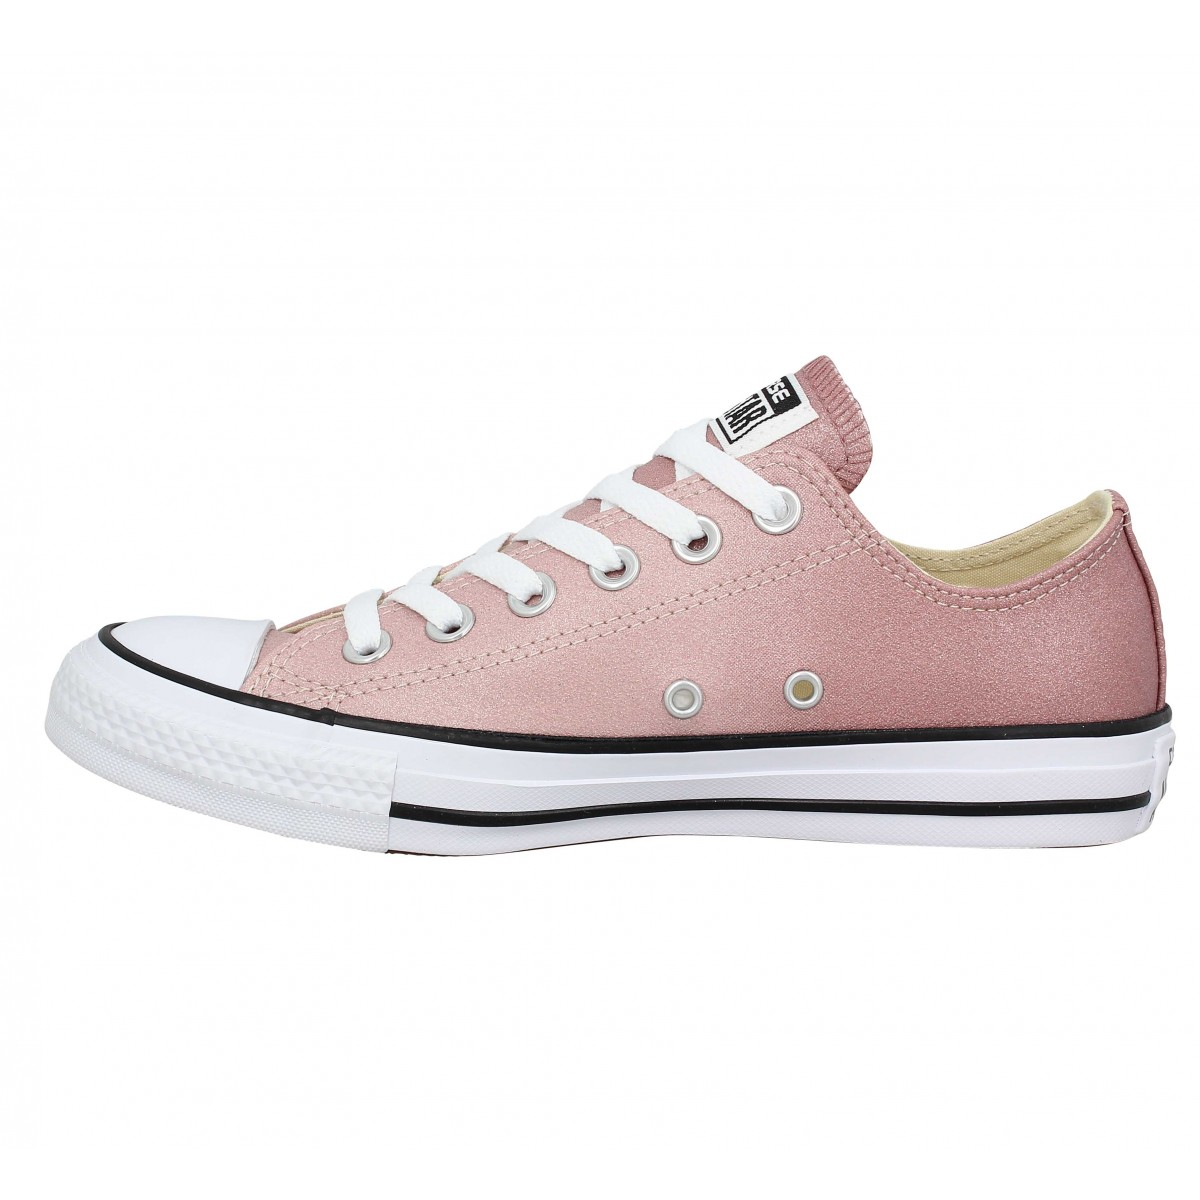 CONVERSE Chuck Taylor All Star paillettes Femme Saddle